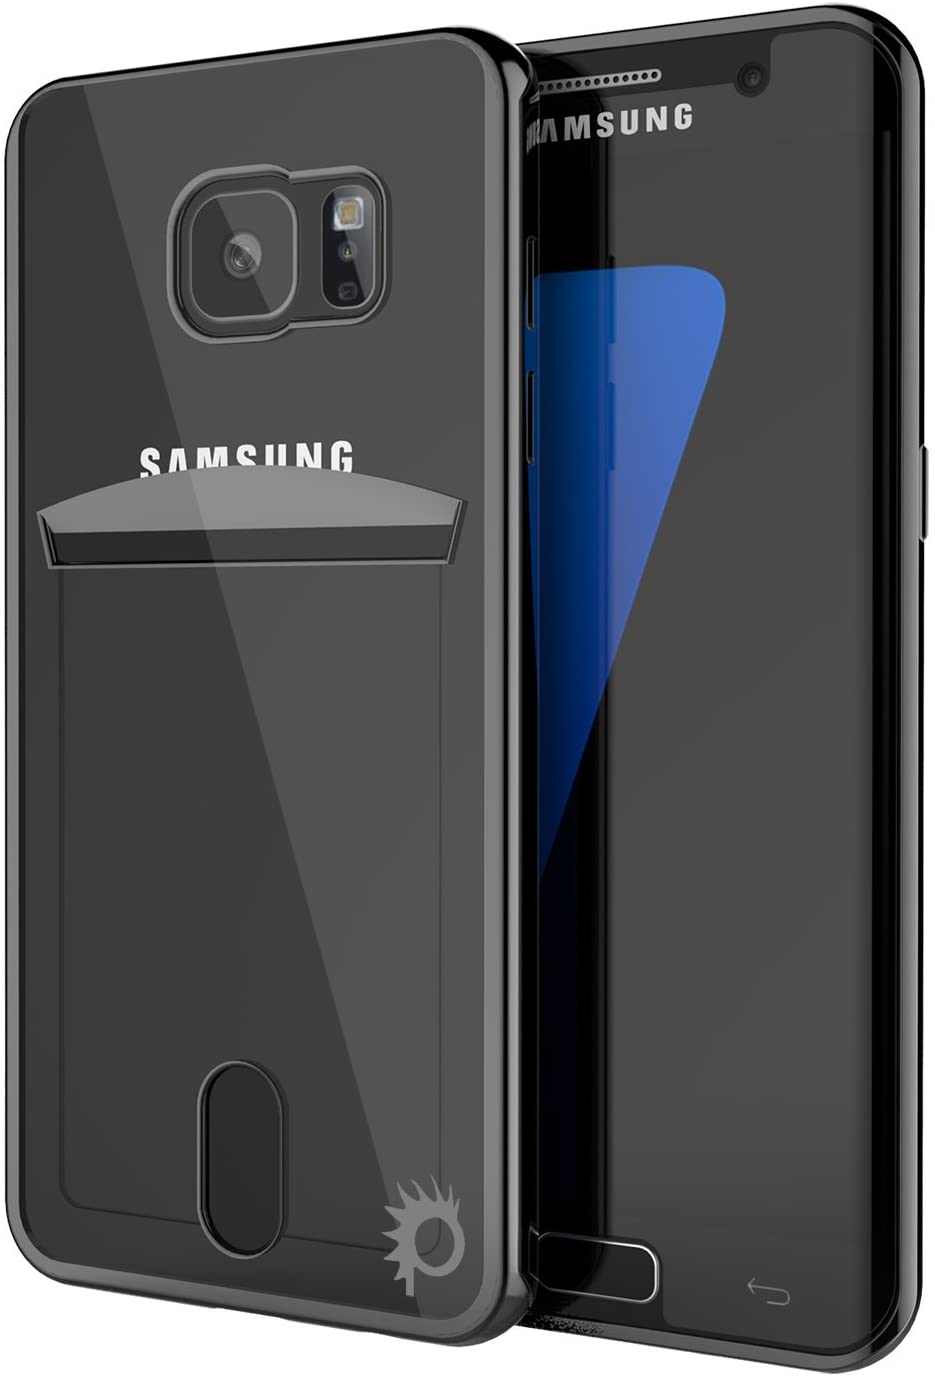 Galaxy S6 Case, PUNKcase [Lucid Series] [Slim Fit] Protective Dual Layer Armor Cover W/Scratch Resistant PUNKSHIELD Screen Protector [Card Slot Design] for Samsung Galaxy S6 [Black]